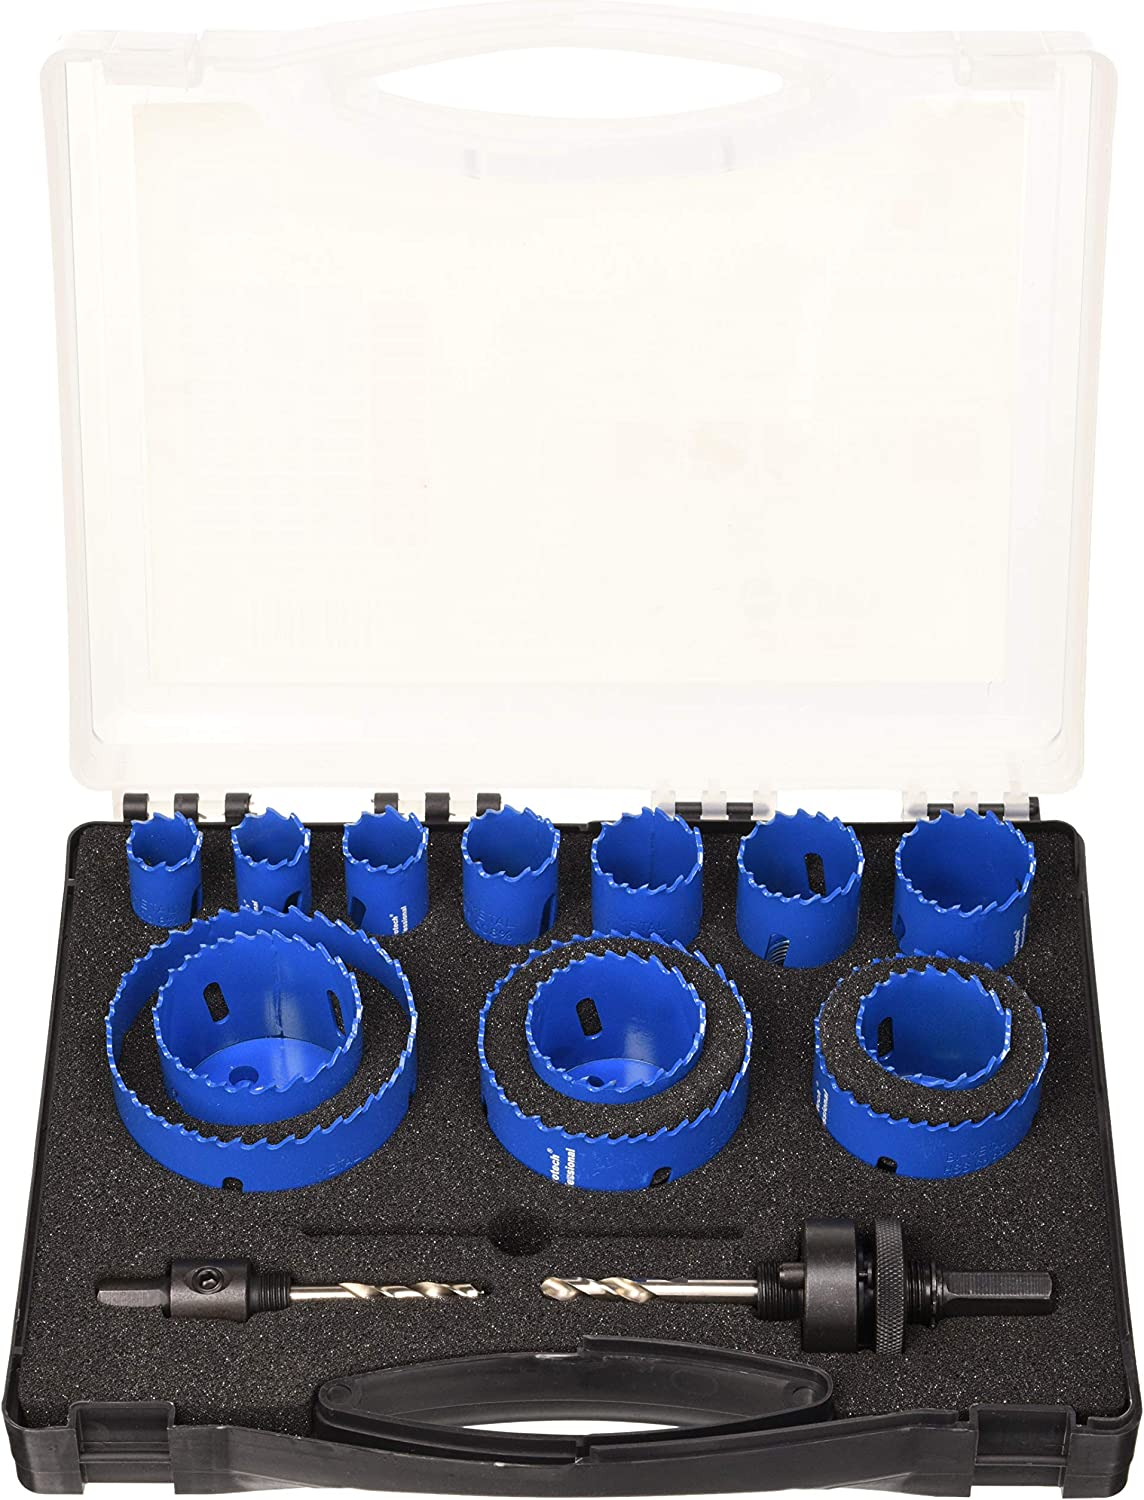 Blue FERROTECH Set of 13 Crowns M42 HSS 19-20-22-25-29-32-35-38-44-51-57-67-76 mm 19-76 mm 2 Drill Bit